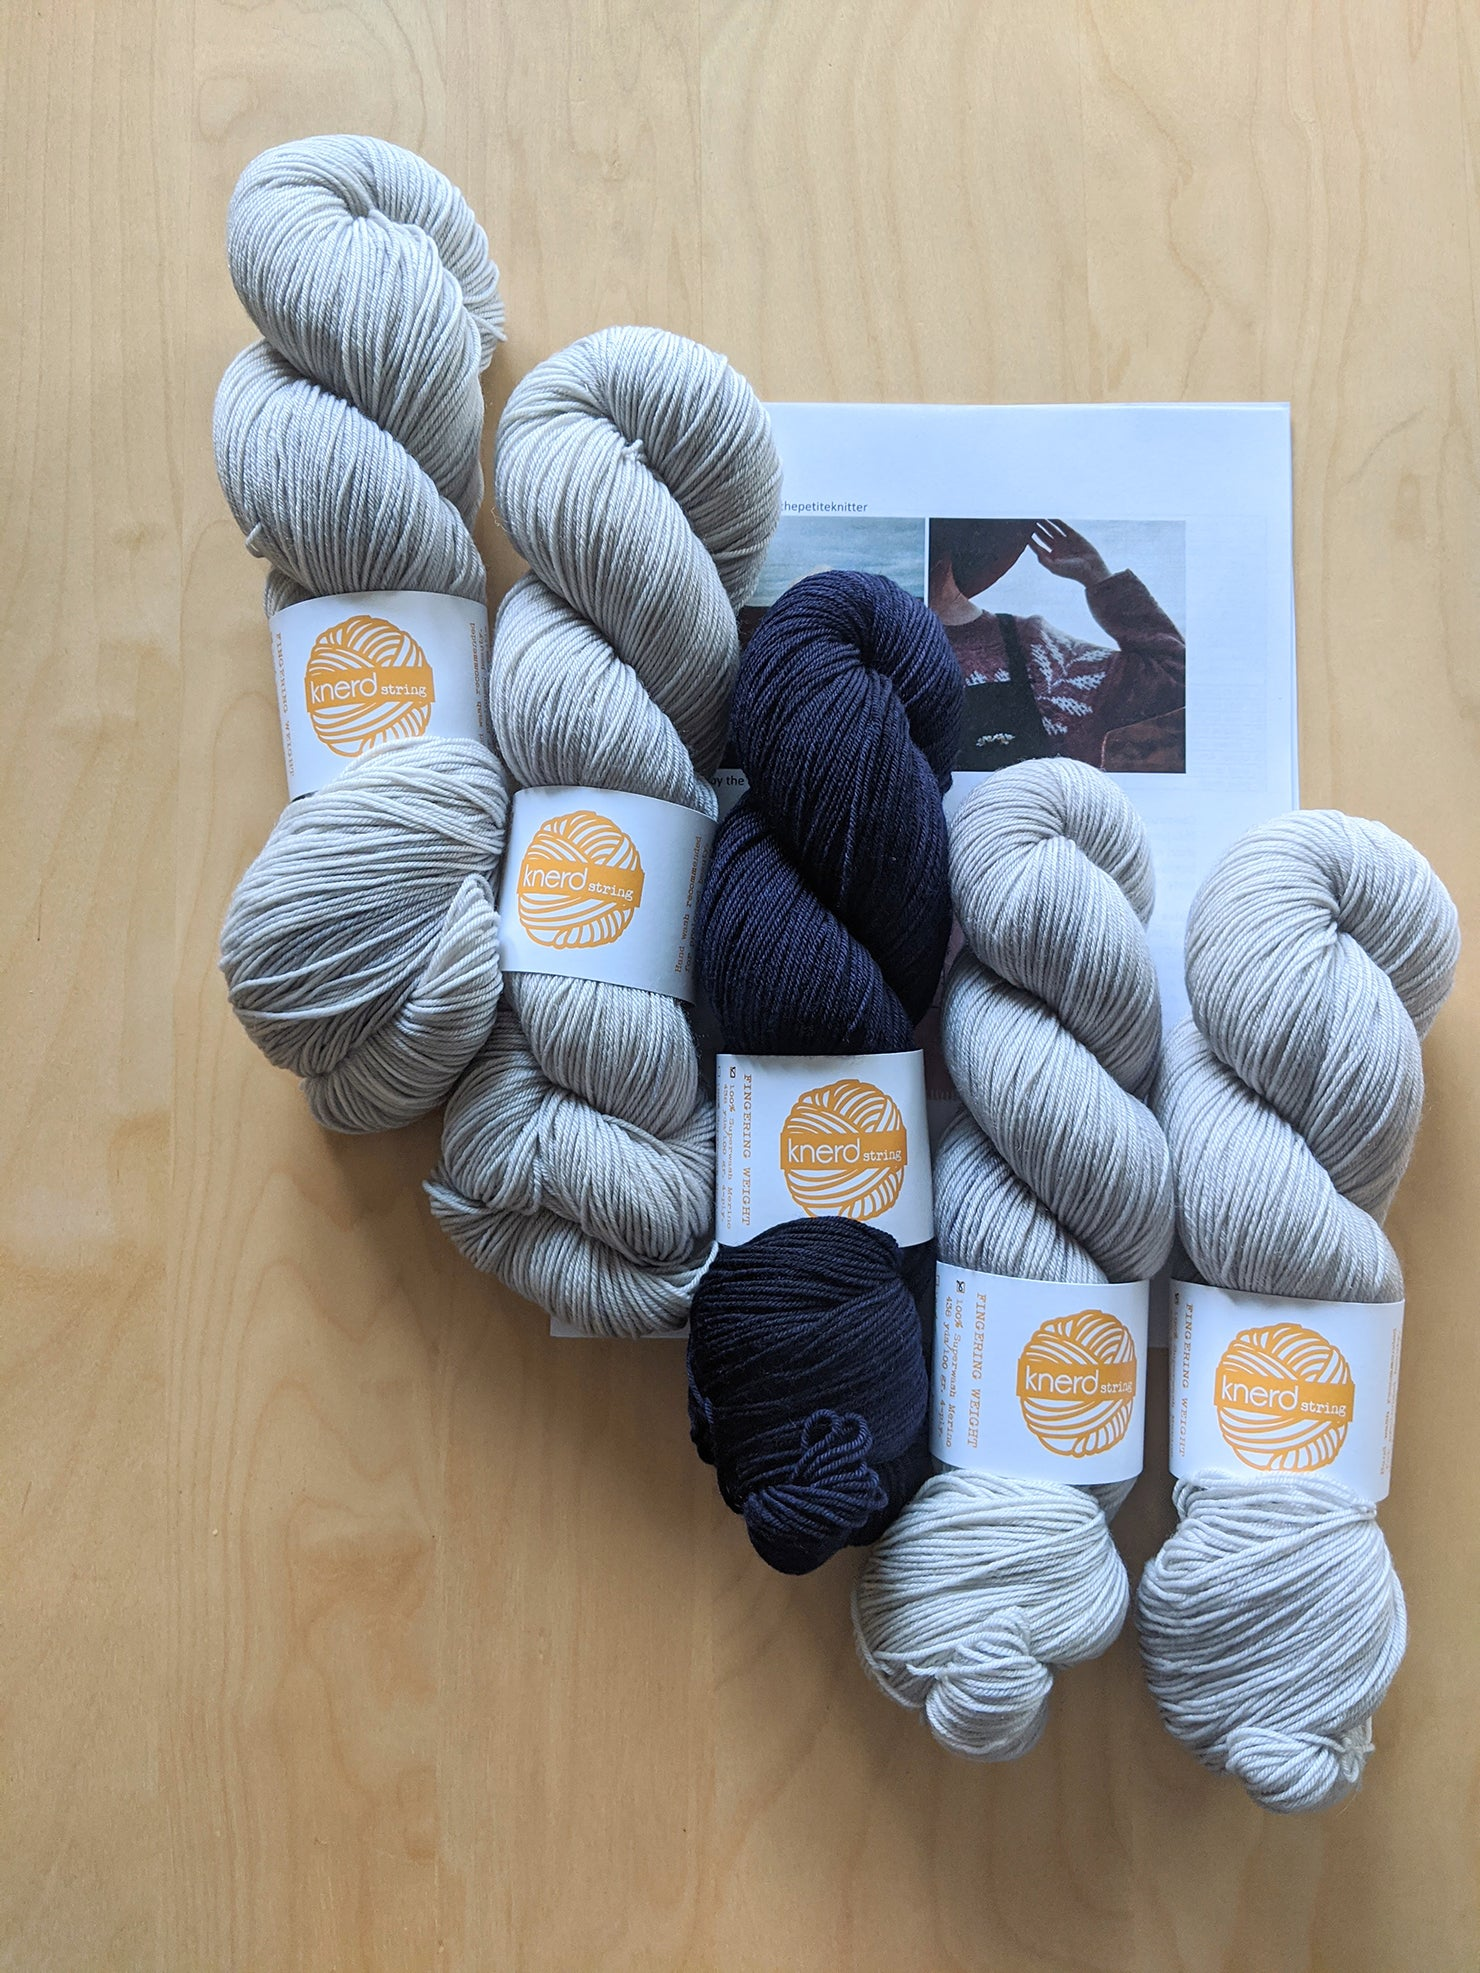 This is an image of the Knerd String supermerino yarn and the pattern on a table.